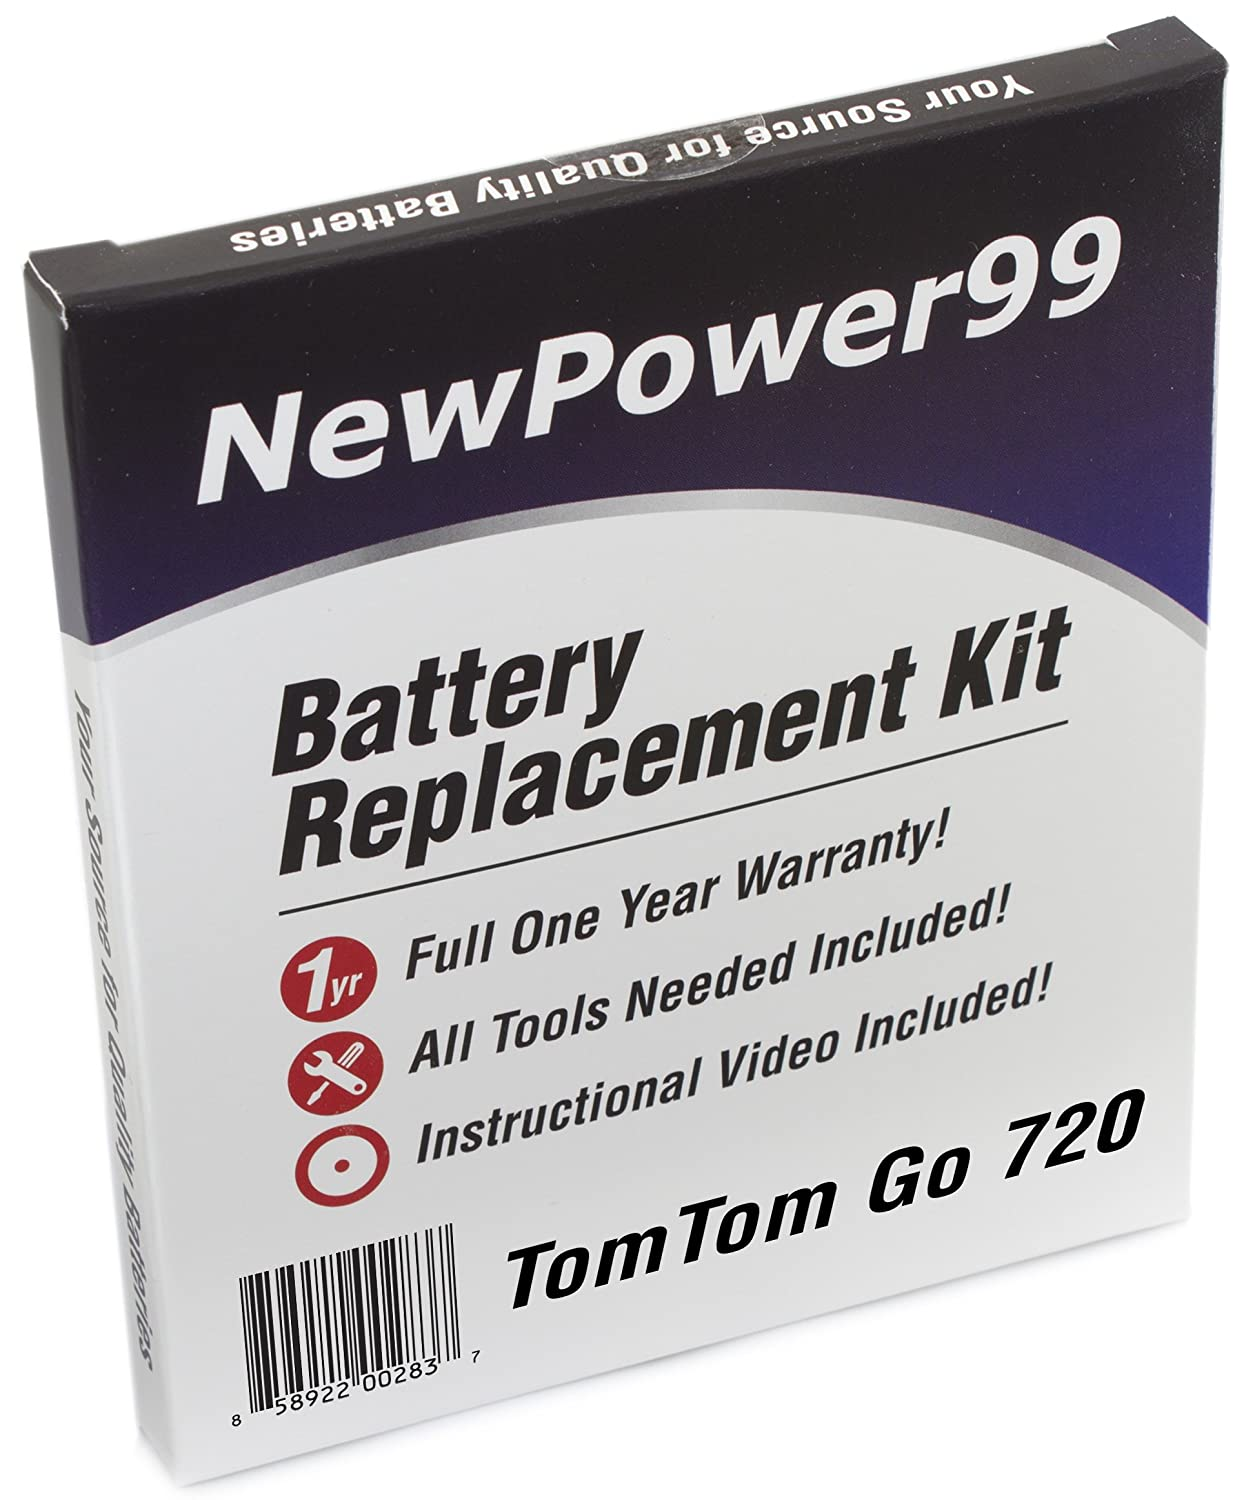 TomTom GO 720 Battery Replacement Kit with Installation Video, Tools, and Extended Life Battery. NewPower99